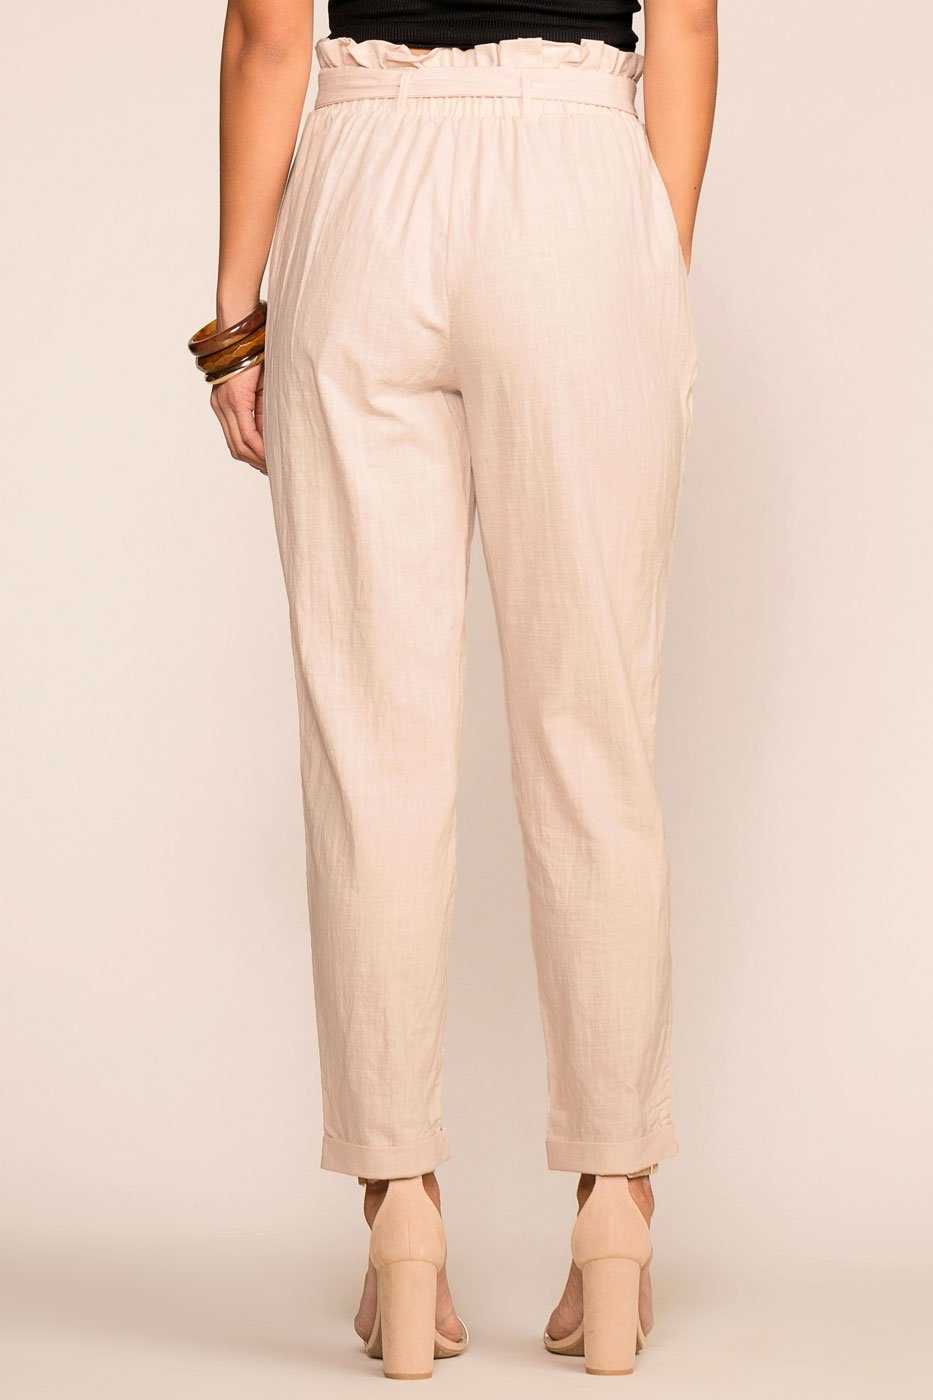 Beige Highwaisted Linen Paperbag Pants